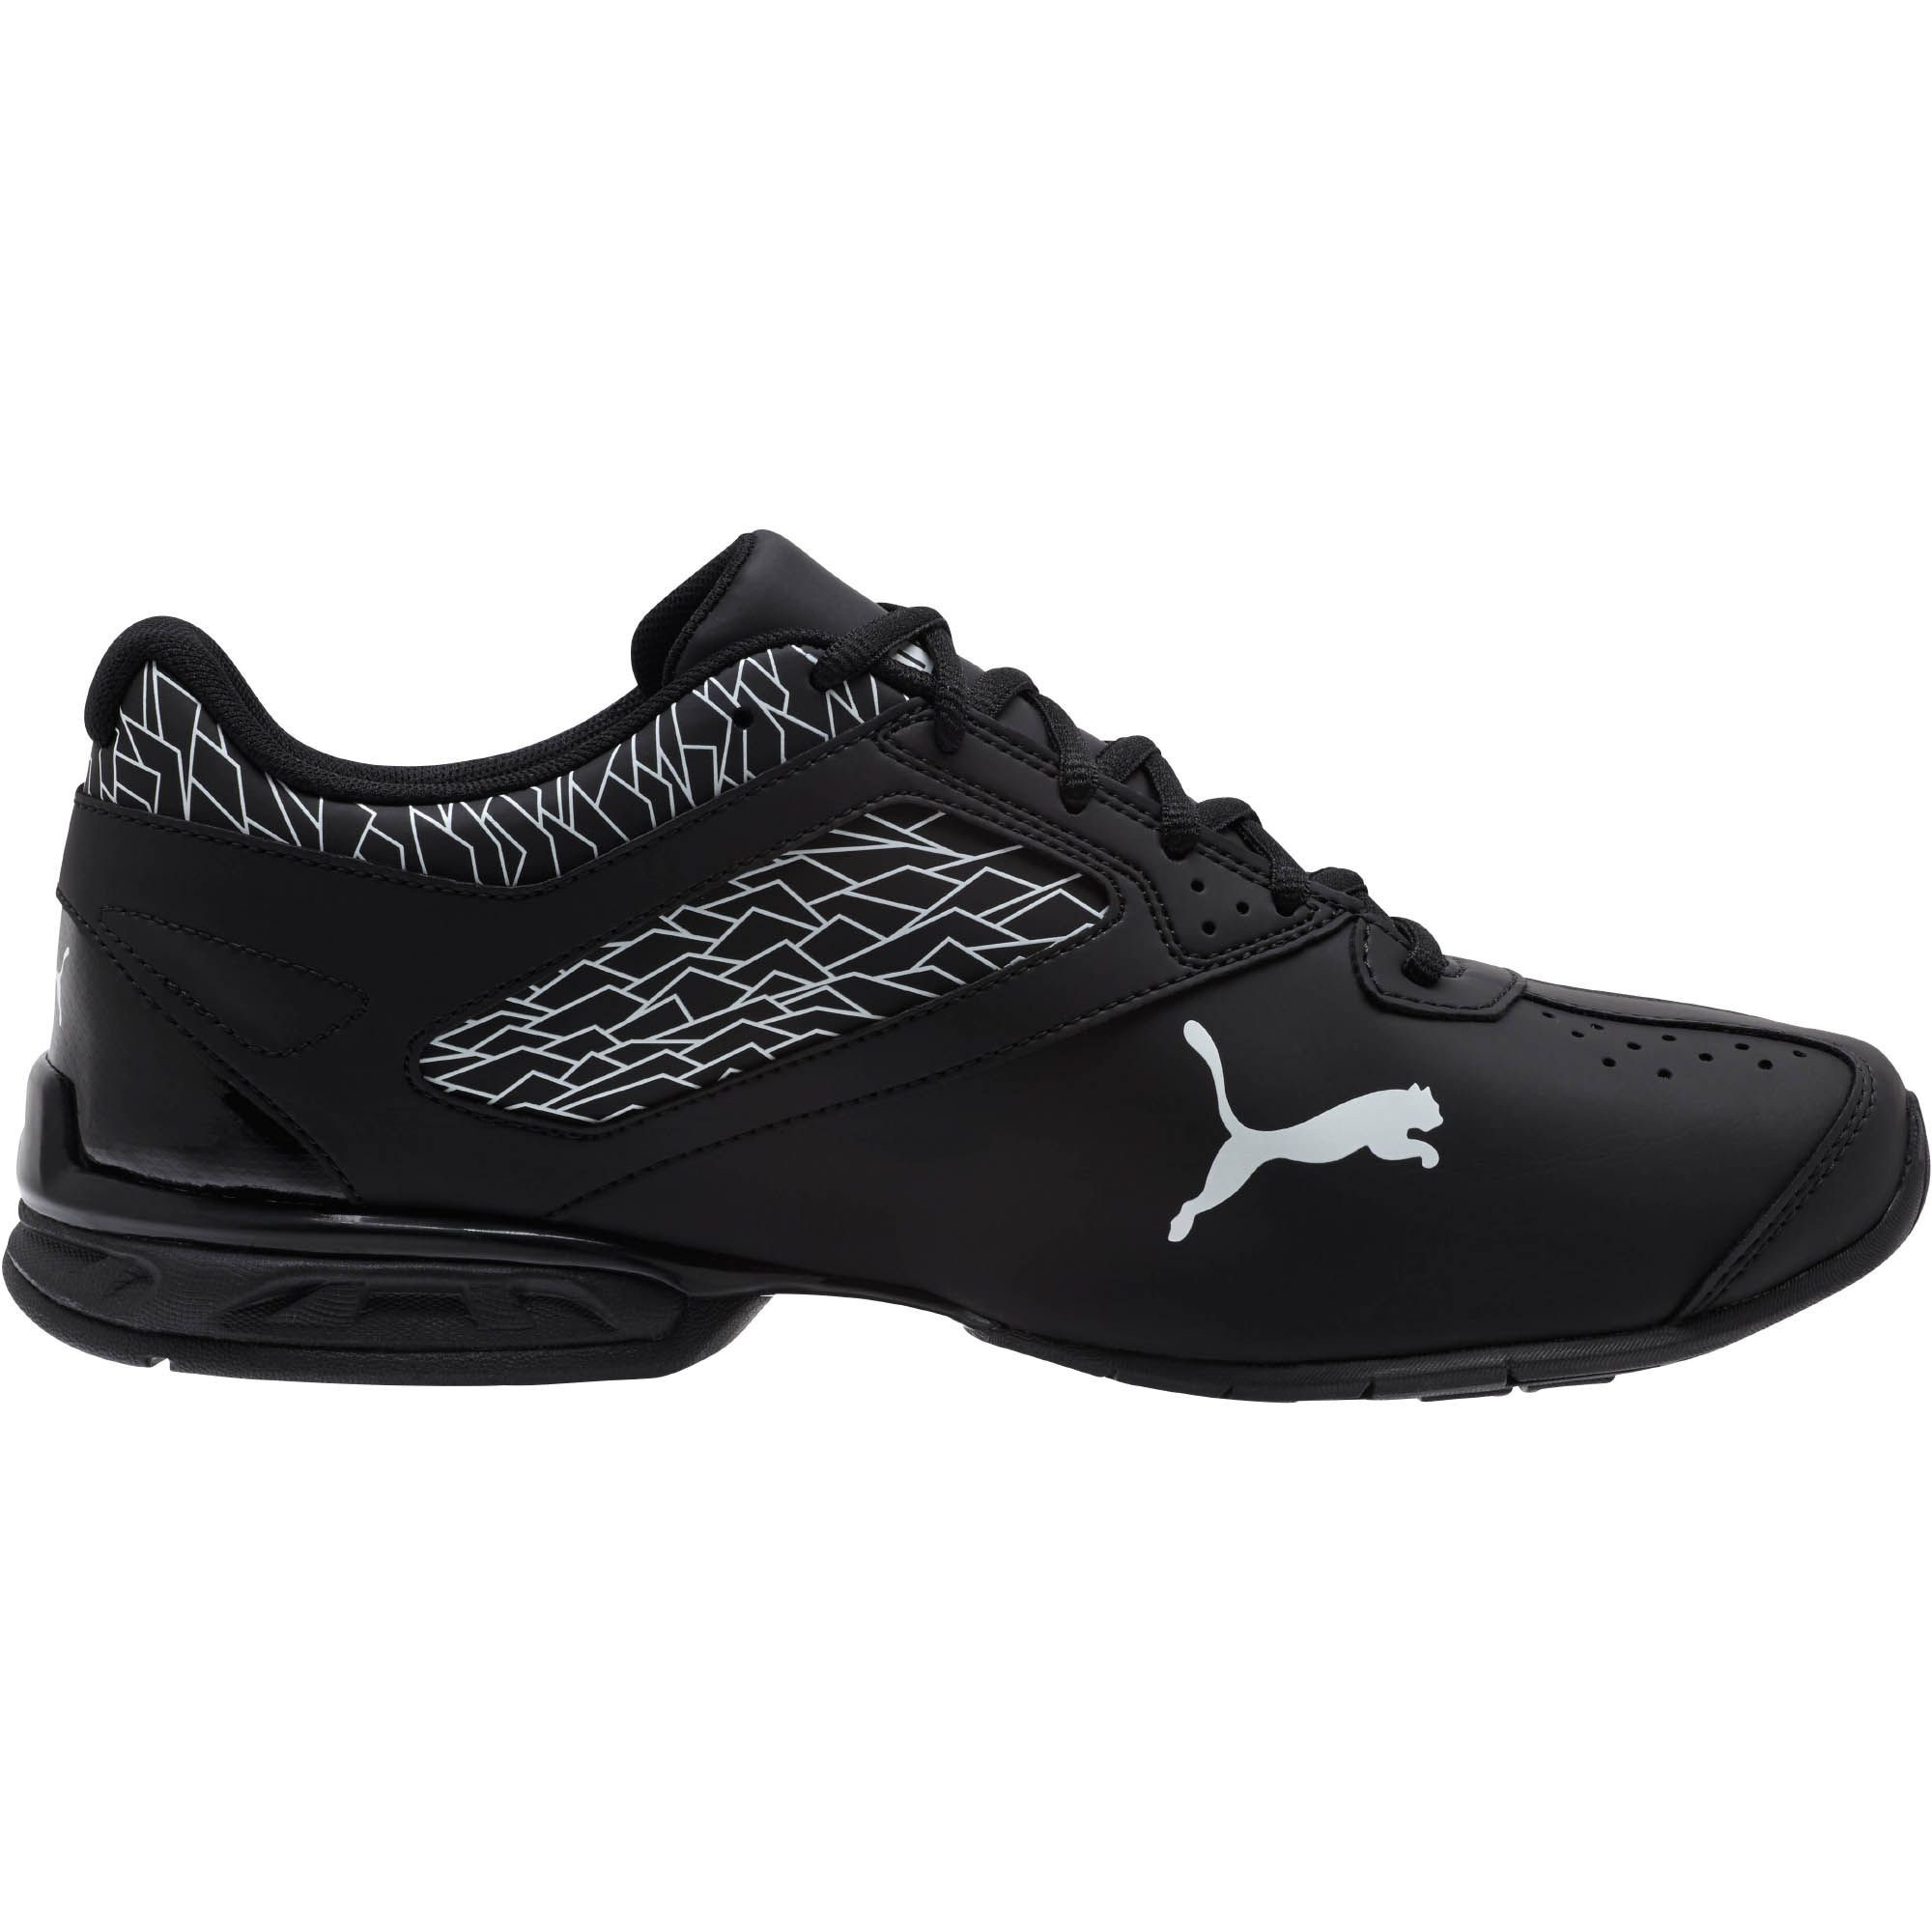 PUMA-Tazon-6-Fracture-FM-Men-039-s-Sneakers-Men-Shoe-Running thumbnail 5